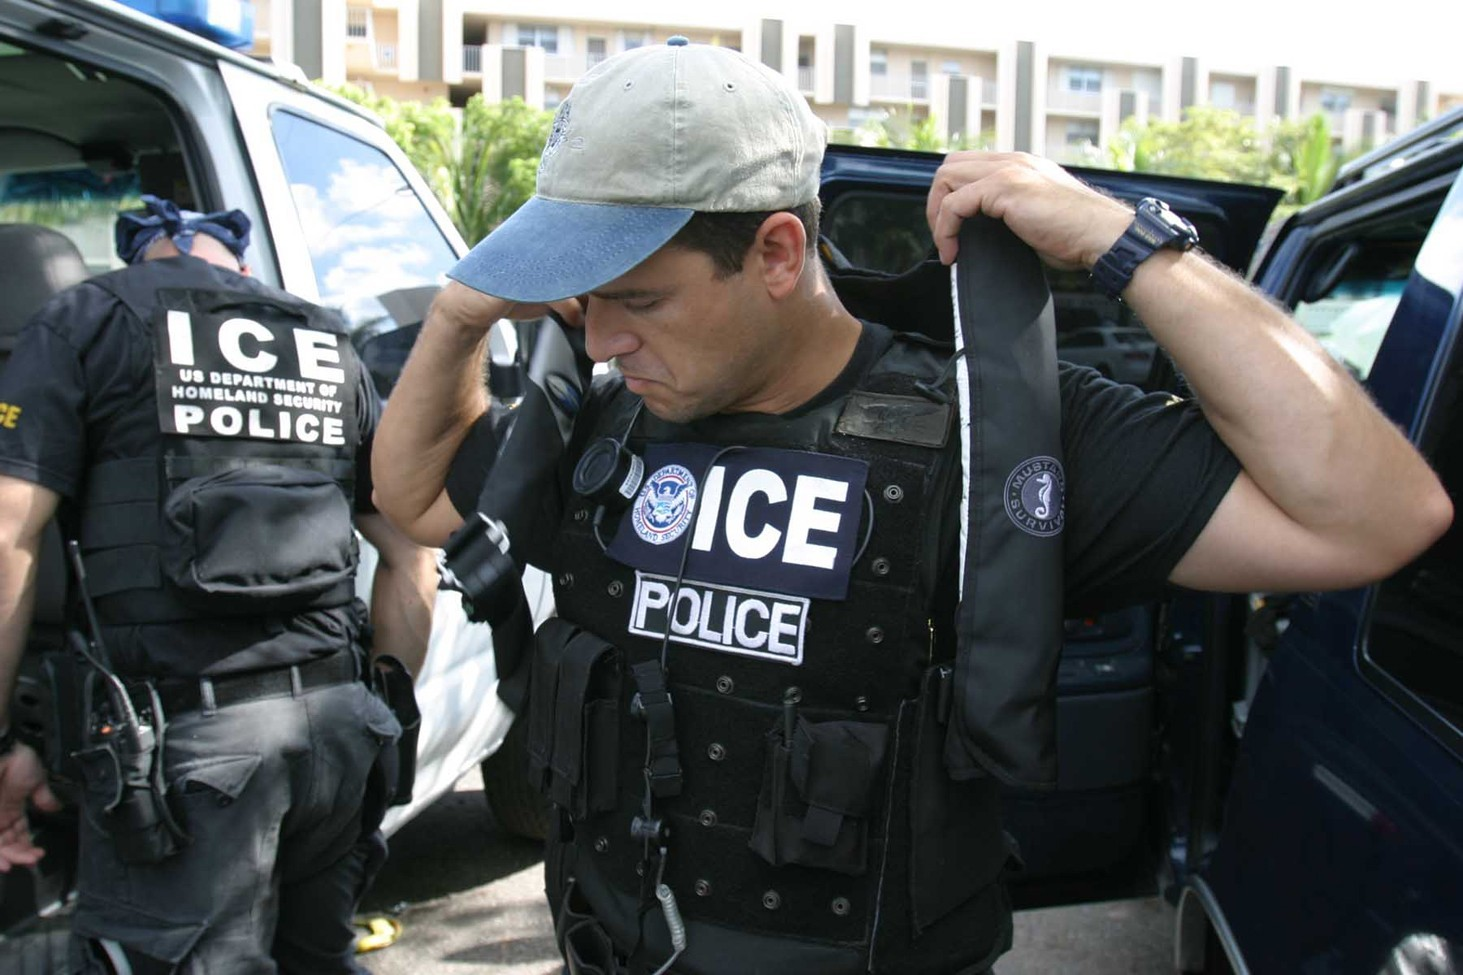 Dems get their wish: ICE releases '16 illegals' from infected countries including Italy, endangering more Americans